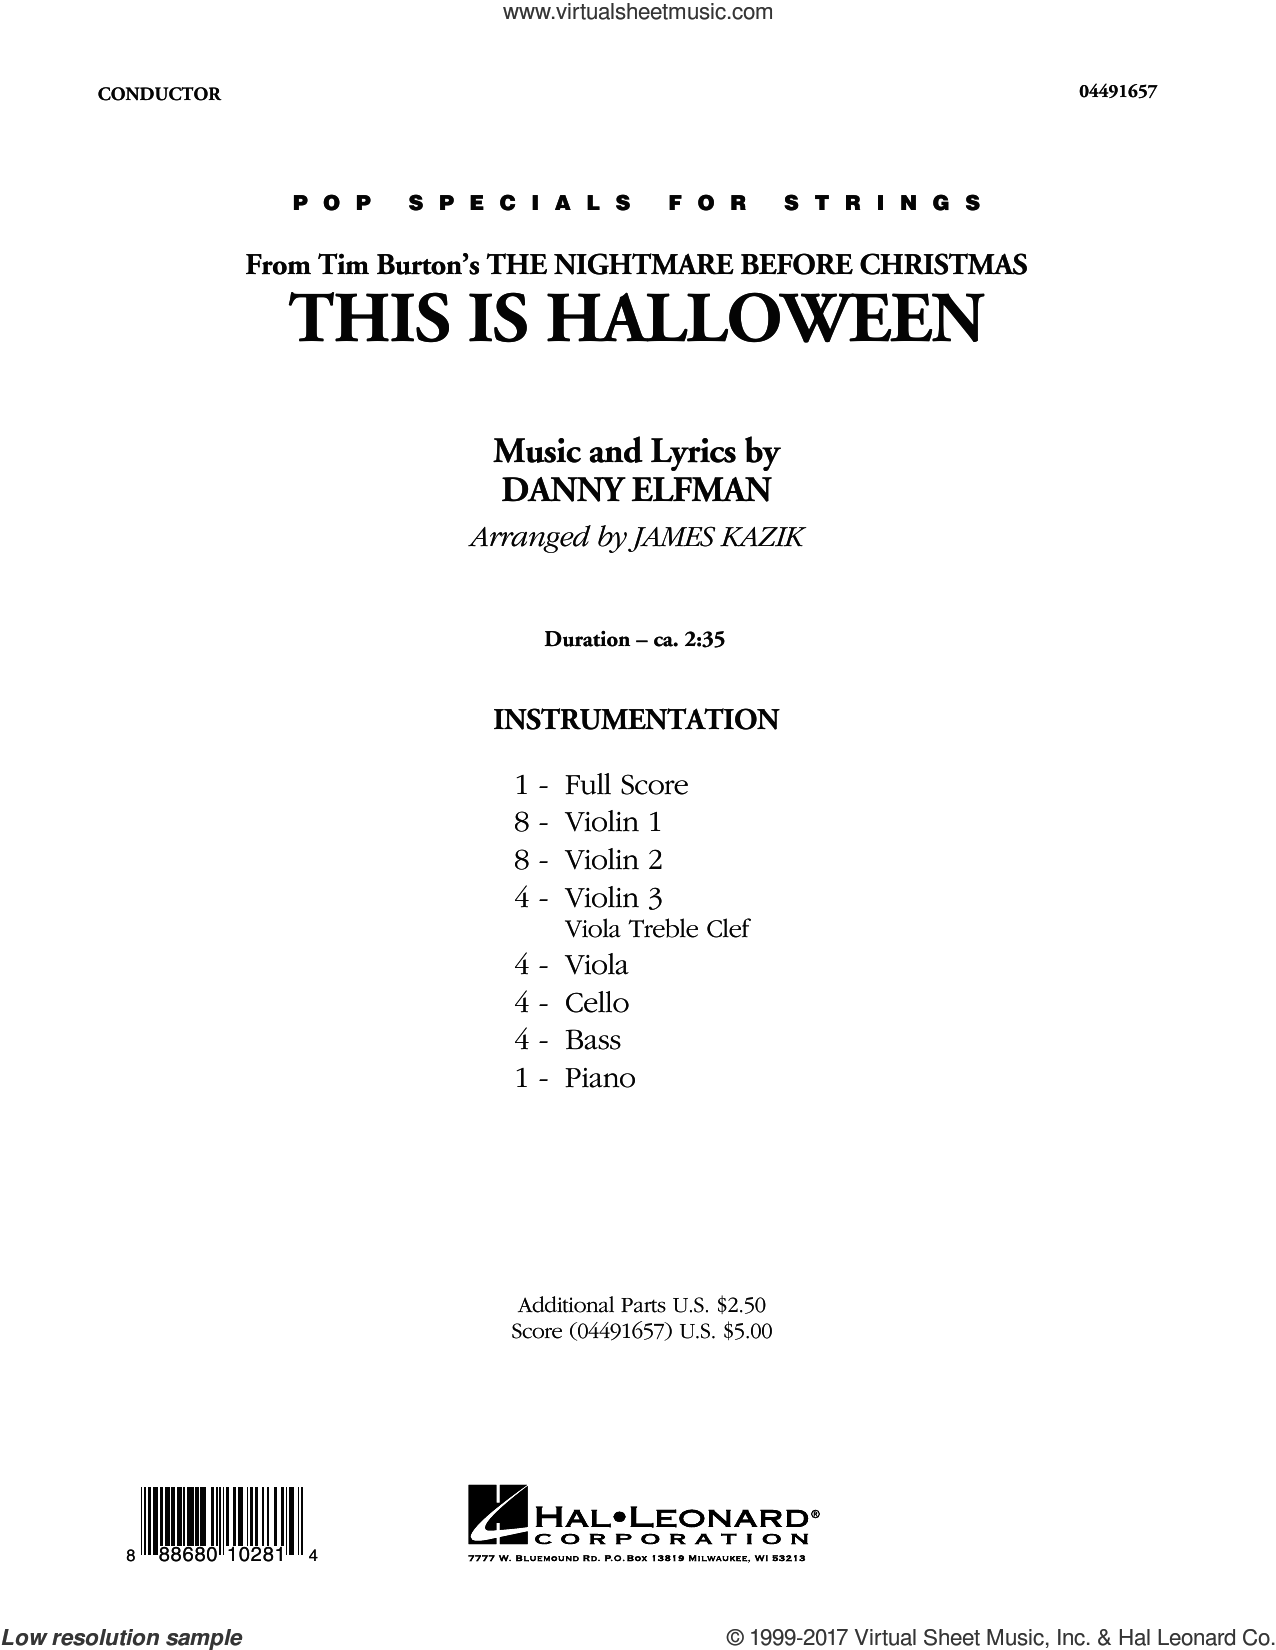 Elfman - This Is Halloween sheet music (complete collection) for ...